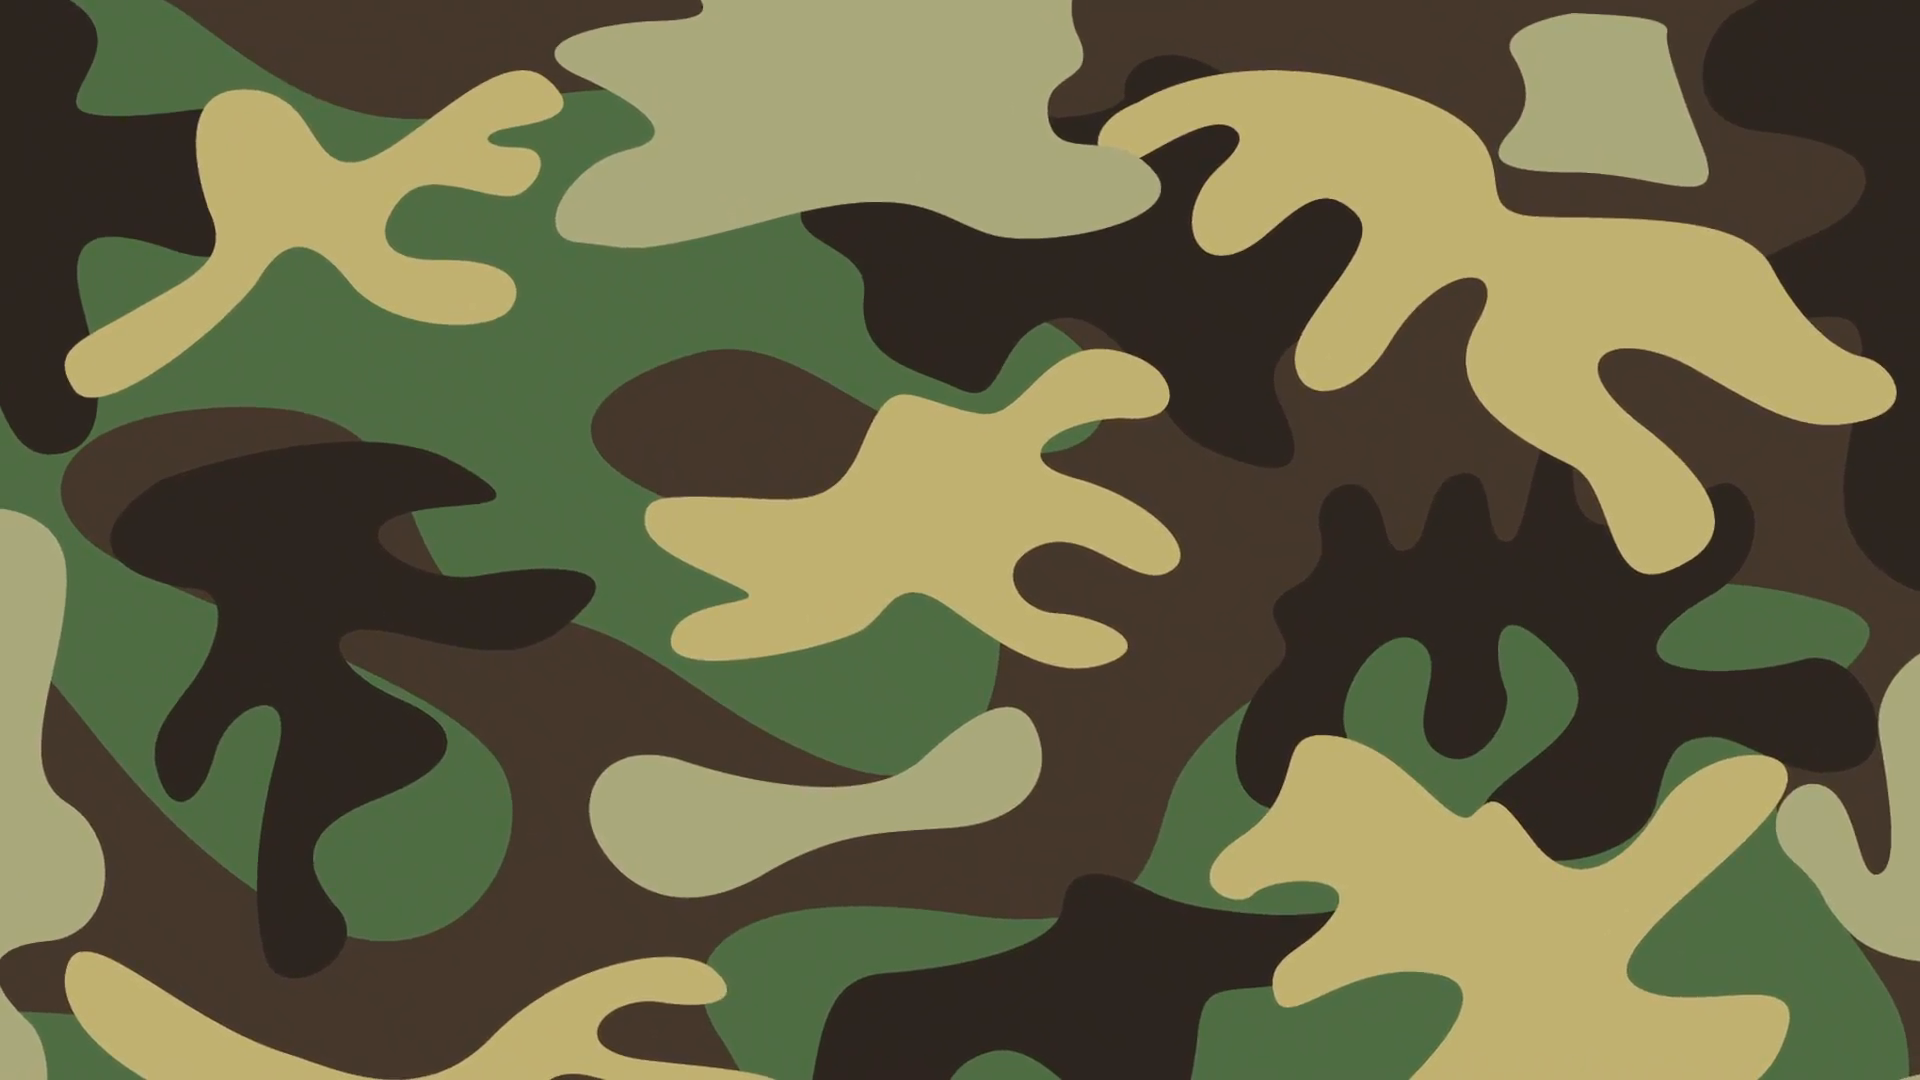 military camouflage design, Video Animation Motion Background.